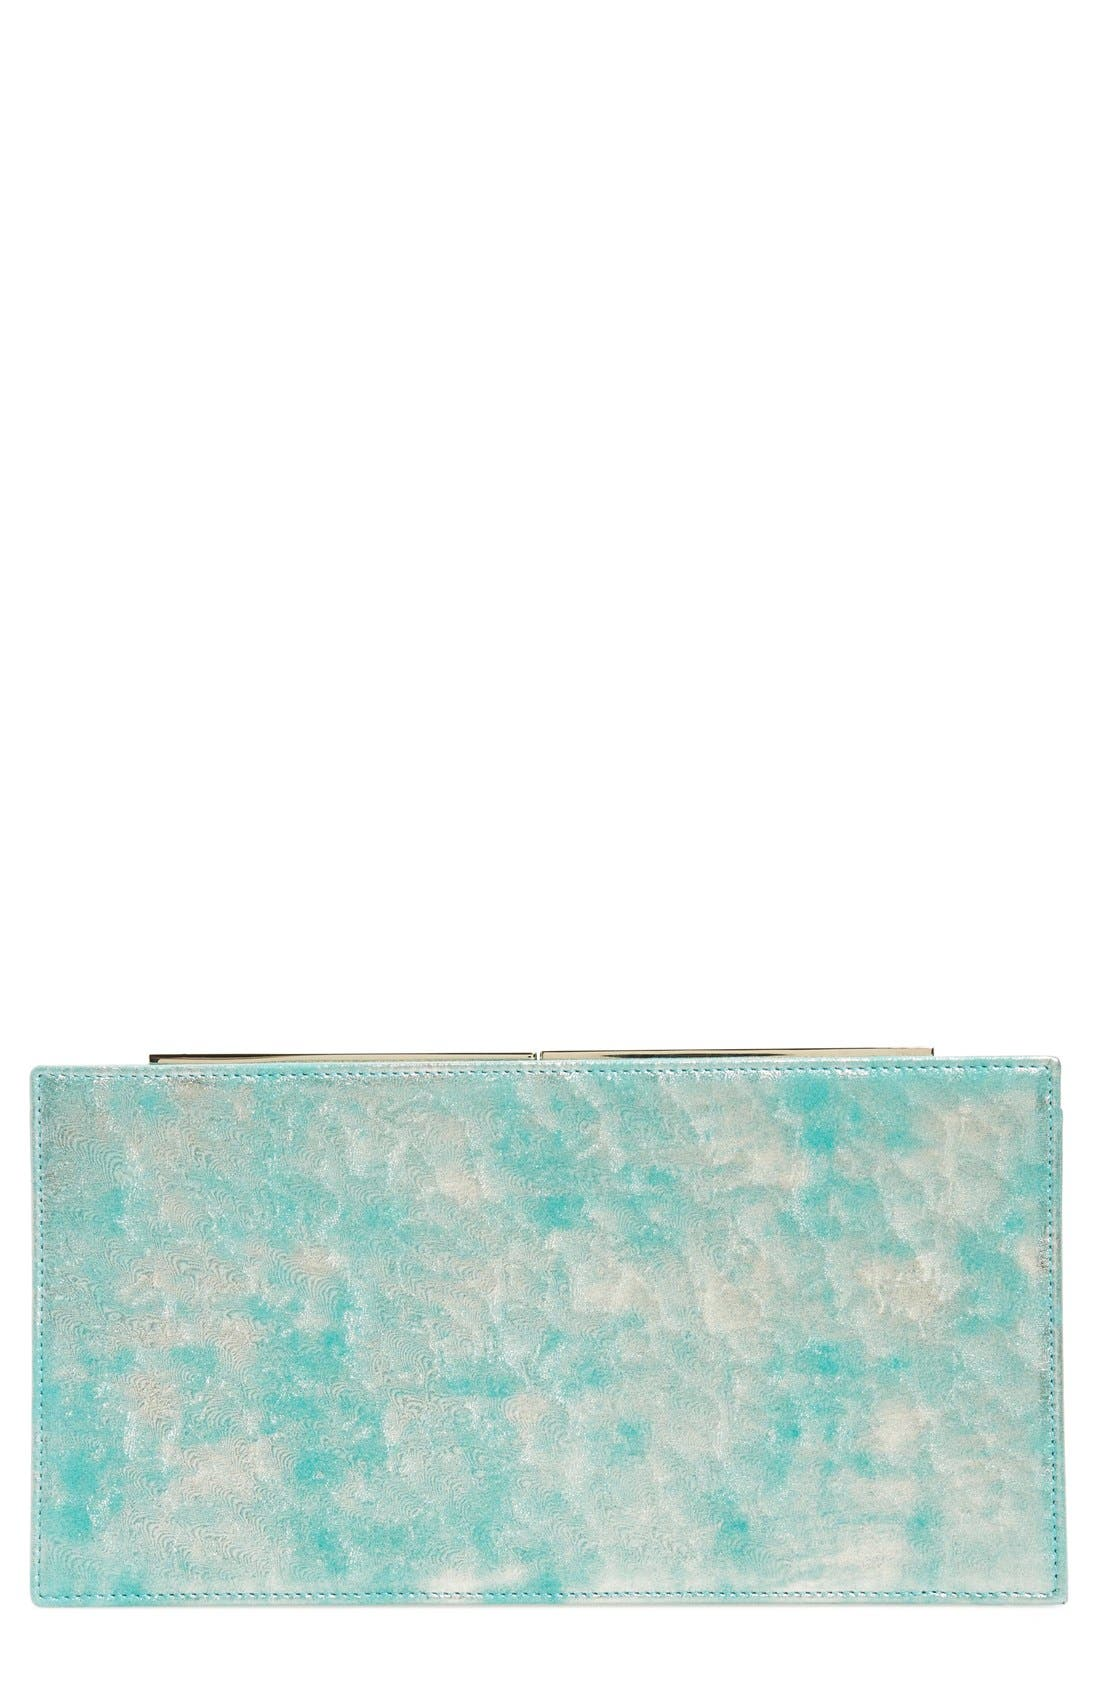 Main Image - Jimmy Choo 'Tux' Metallic Suede Clutch